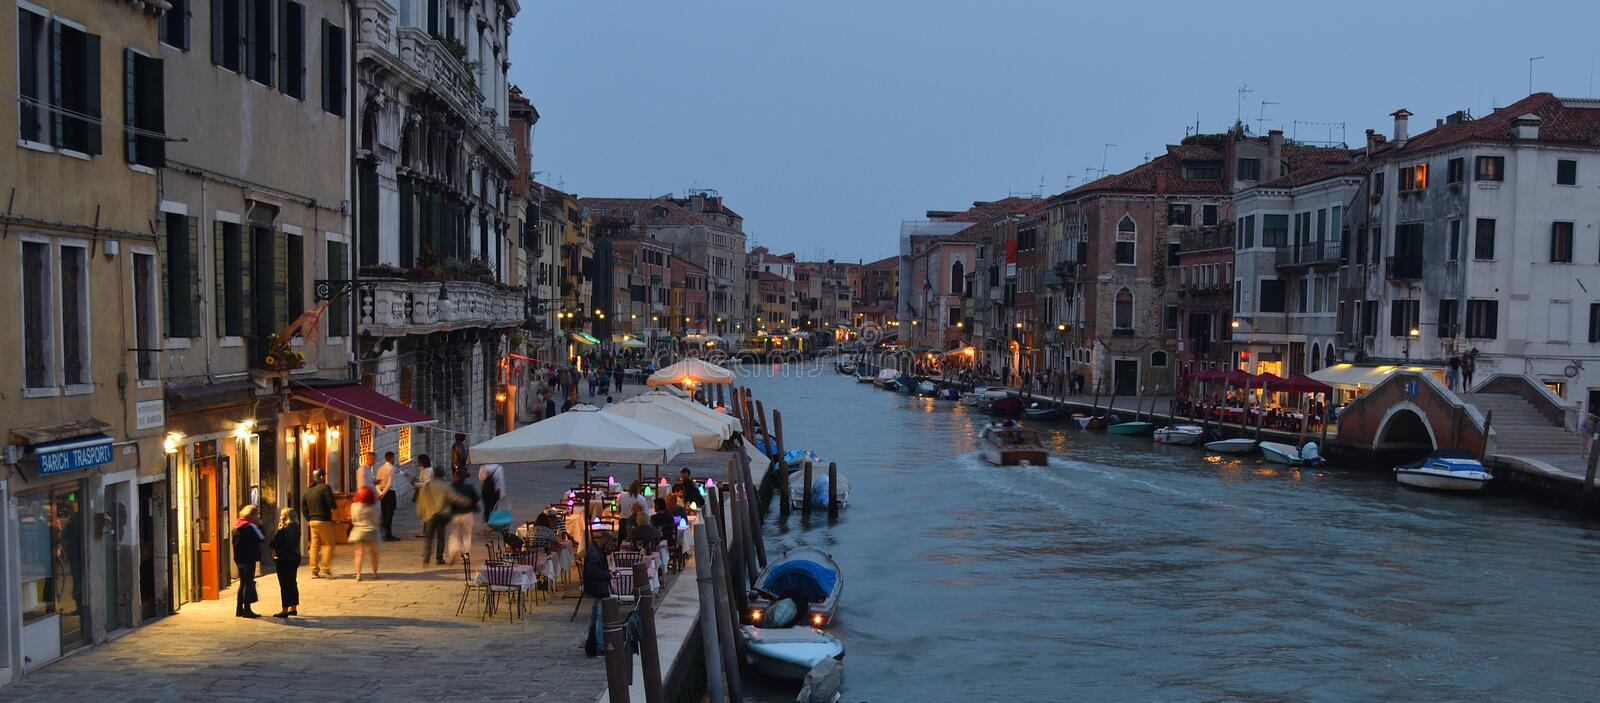 Cannaregio Canal early evening with illuminated restaurants and bars Venice. royalty free stock images